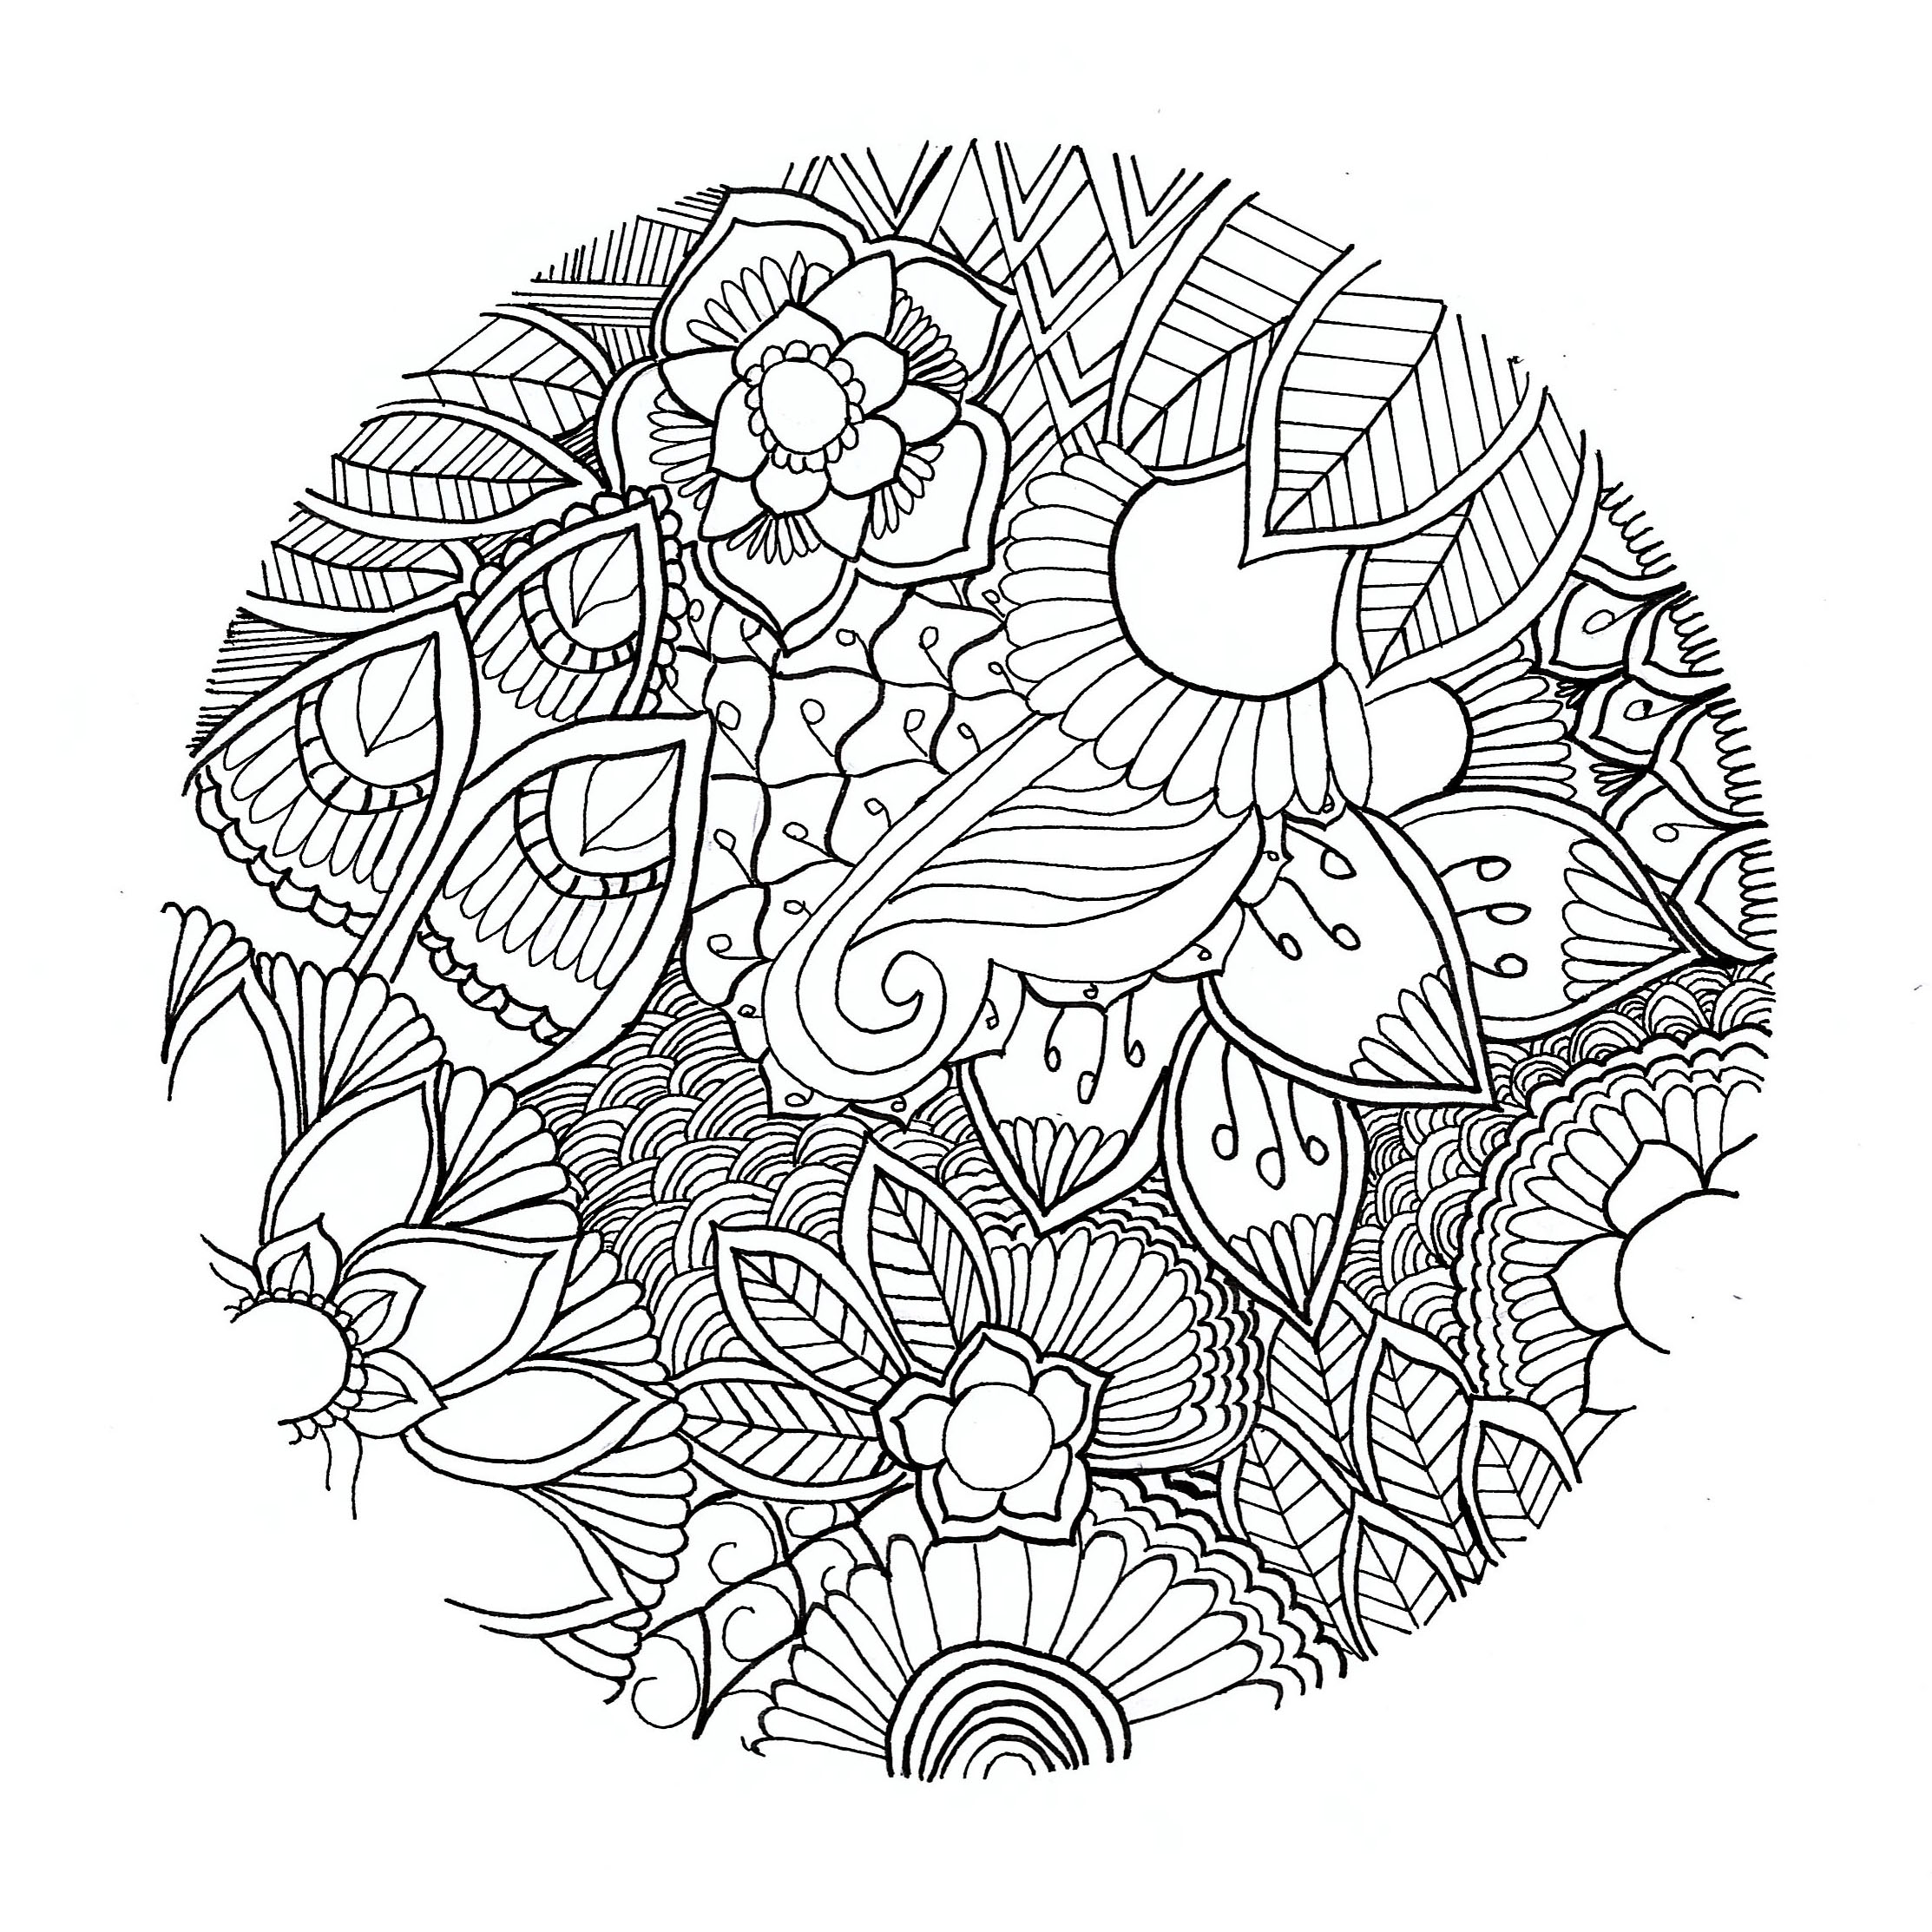 Flowers in a circle Mandalas